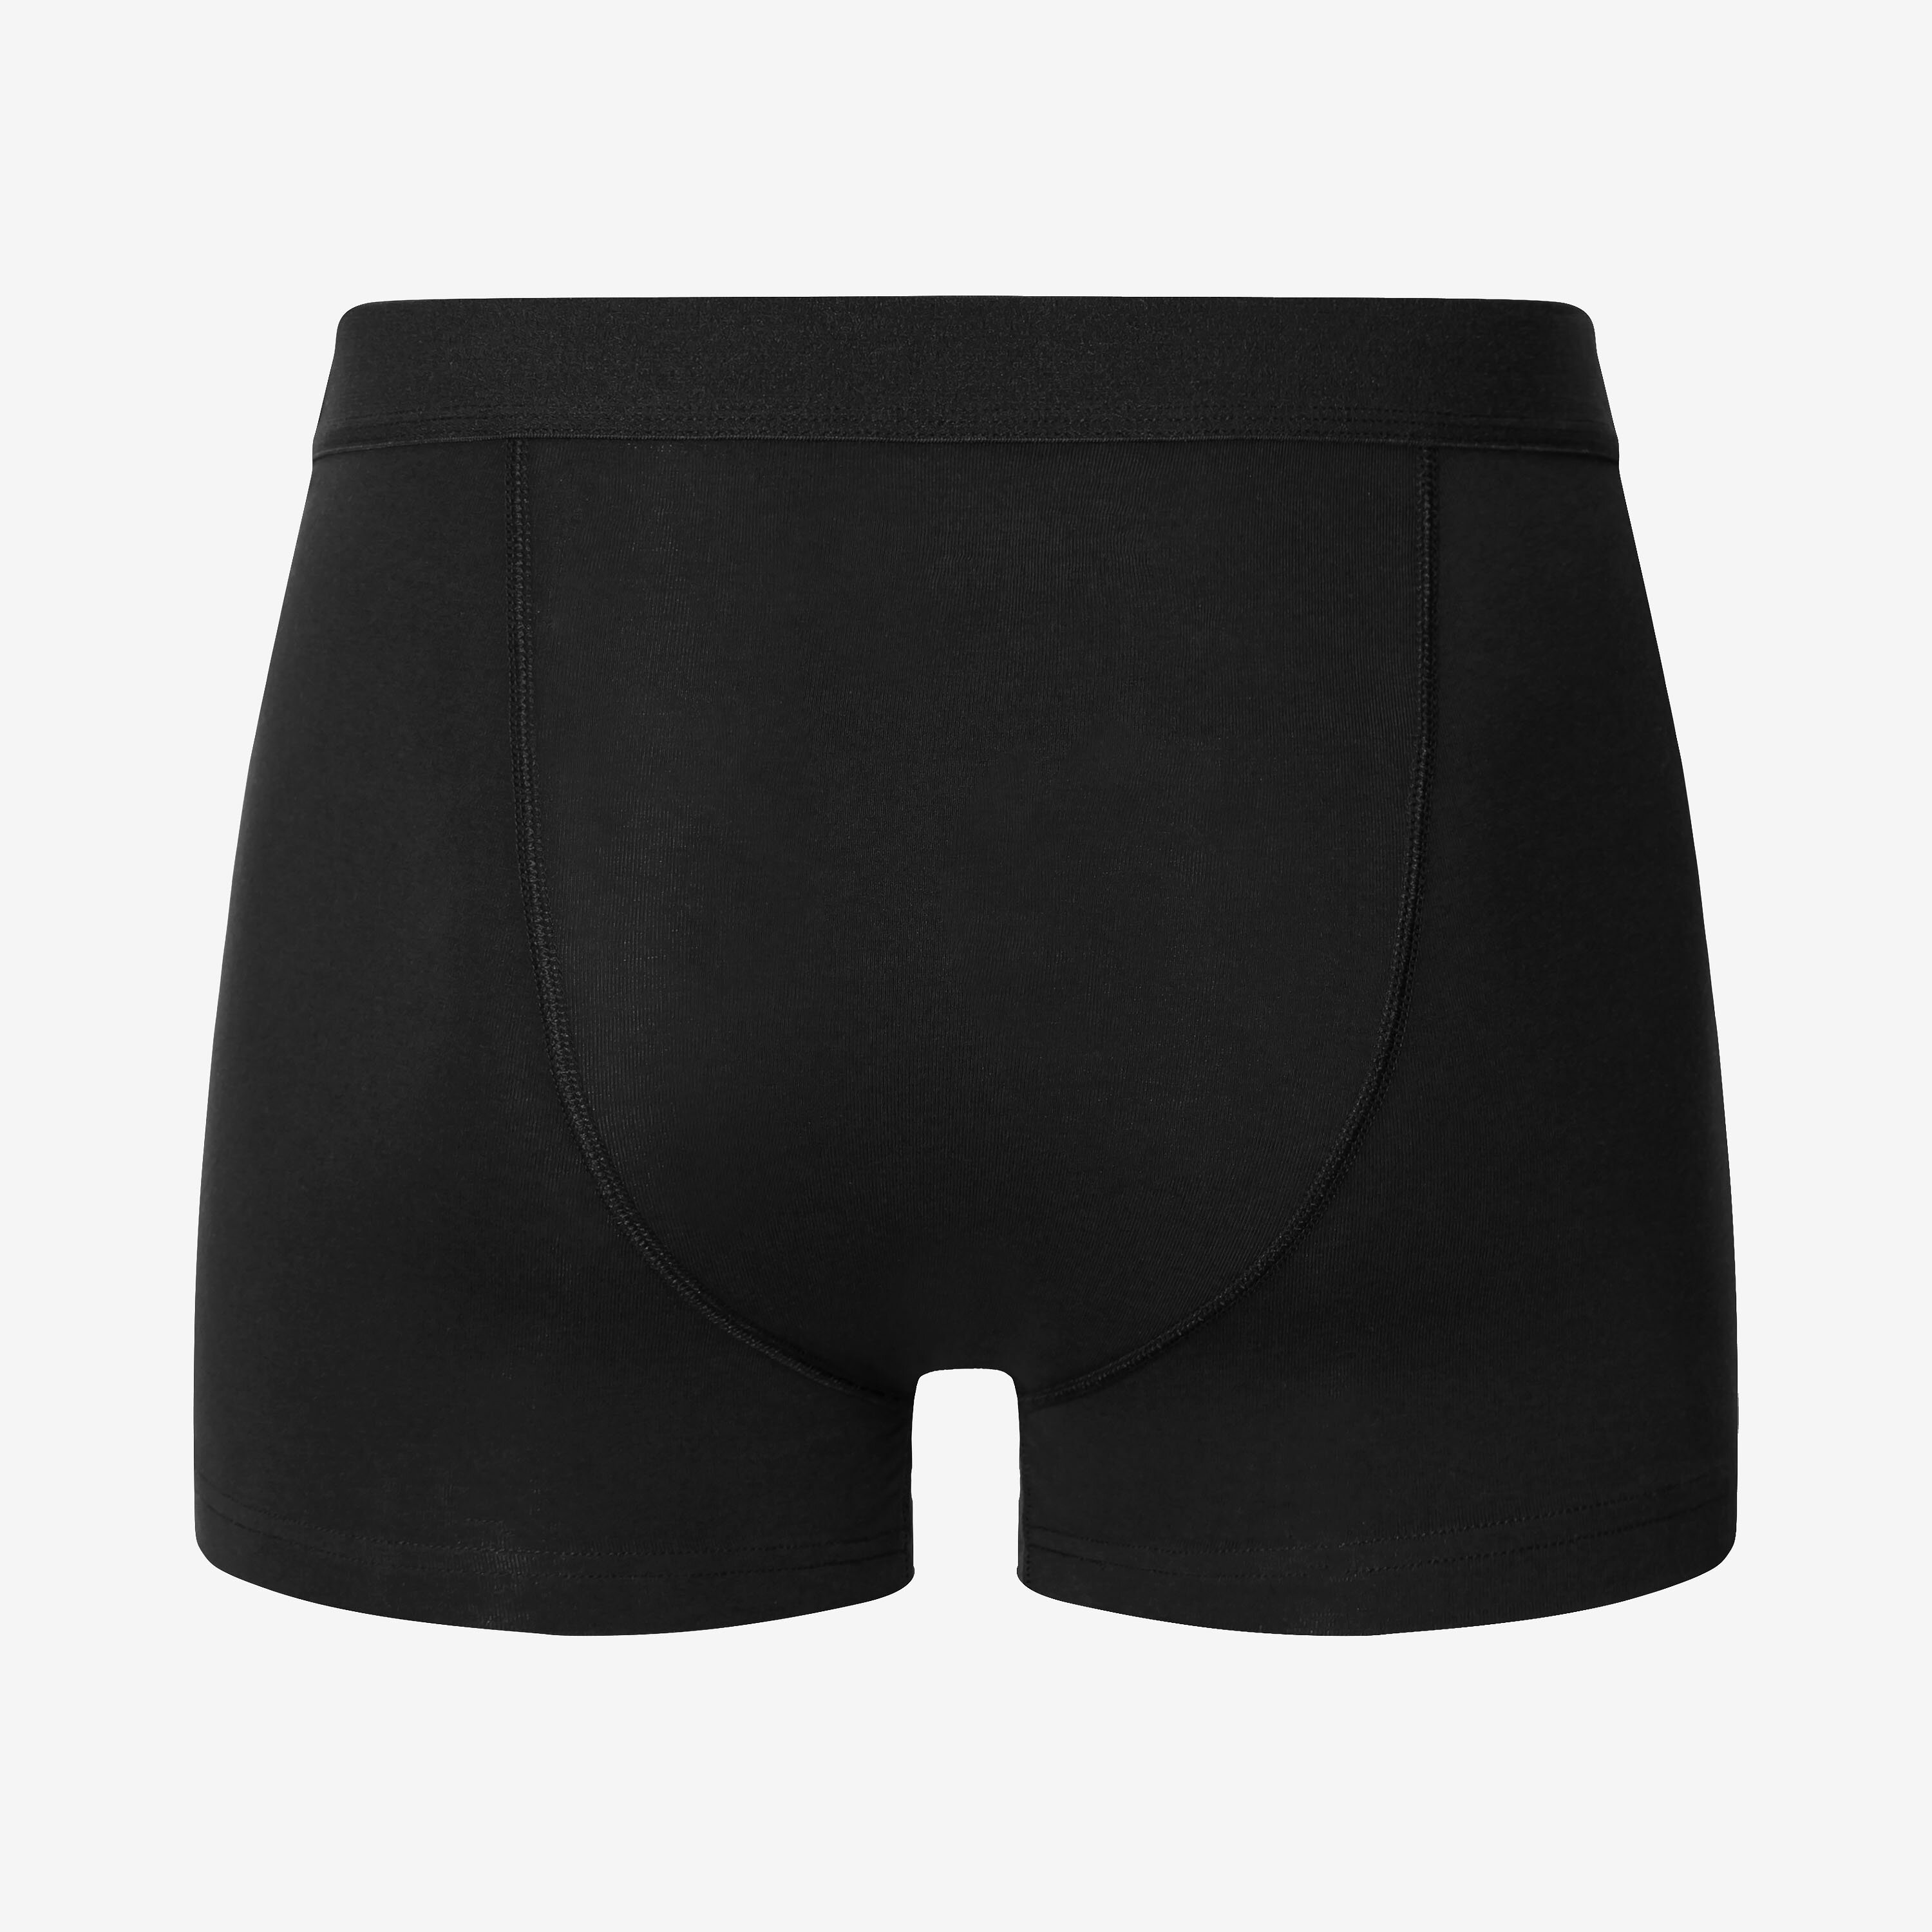 202202_Man_Boxer-Brief_black_CO-B